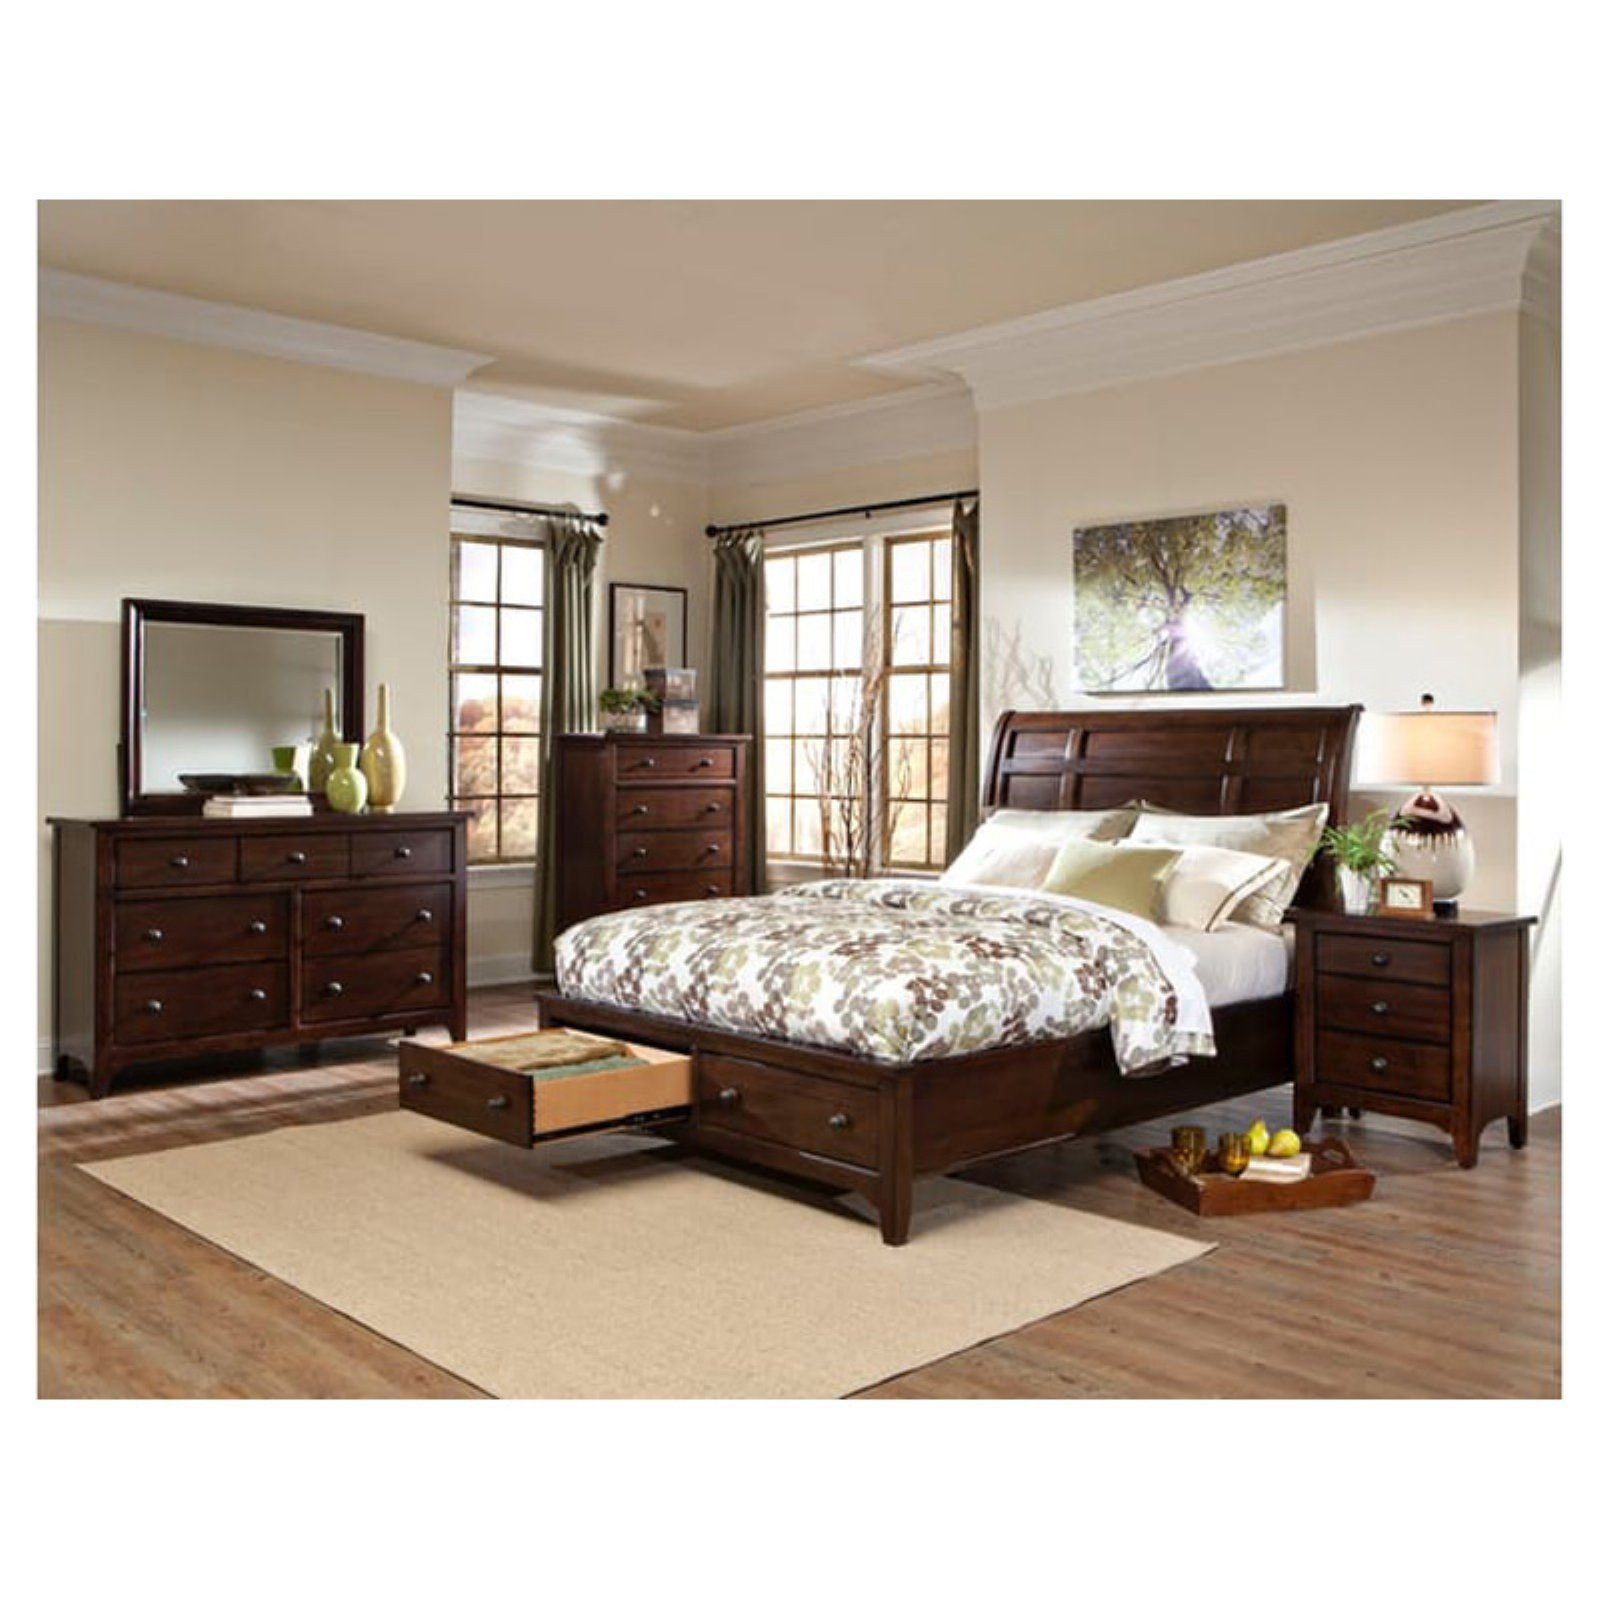 Bedroom Set Full Size Bed Lovely Imagio Home Jackson Sleigh Storage Bed Size California